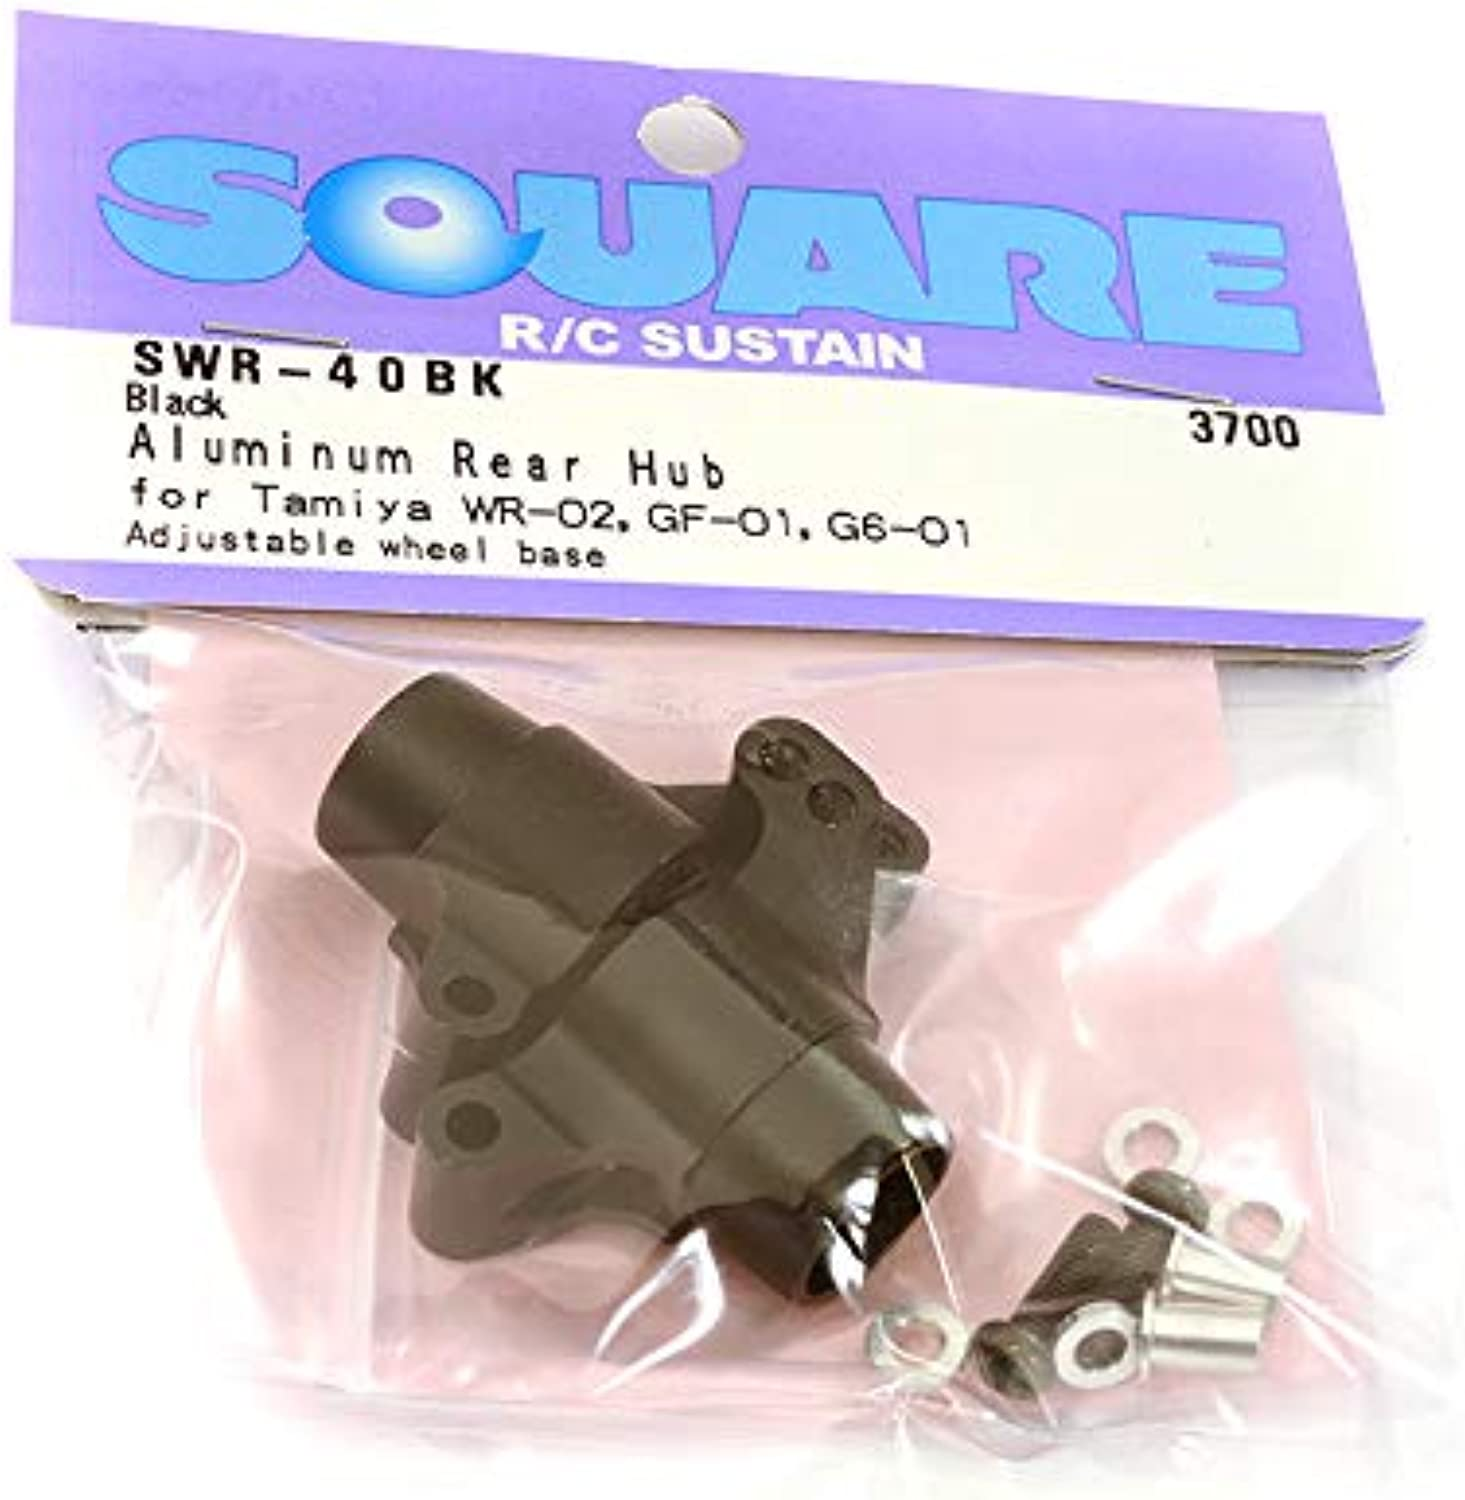 Square R C RC Model Hop-ups SQ-SWR-40BK Square R C Aluminum Rear Hub (for Tamiya GF-01, City Turbo and WR02) Black